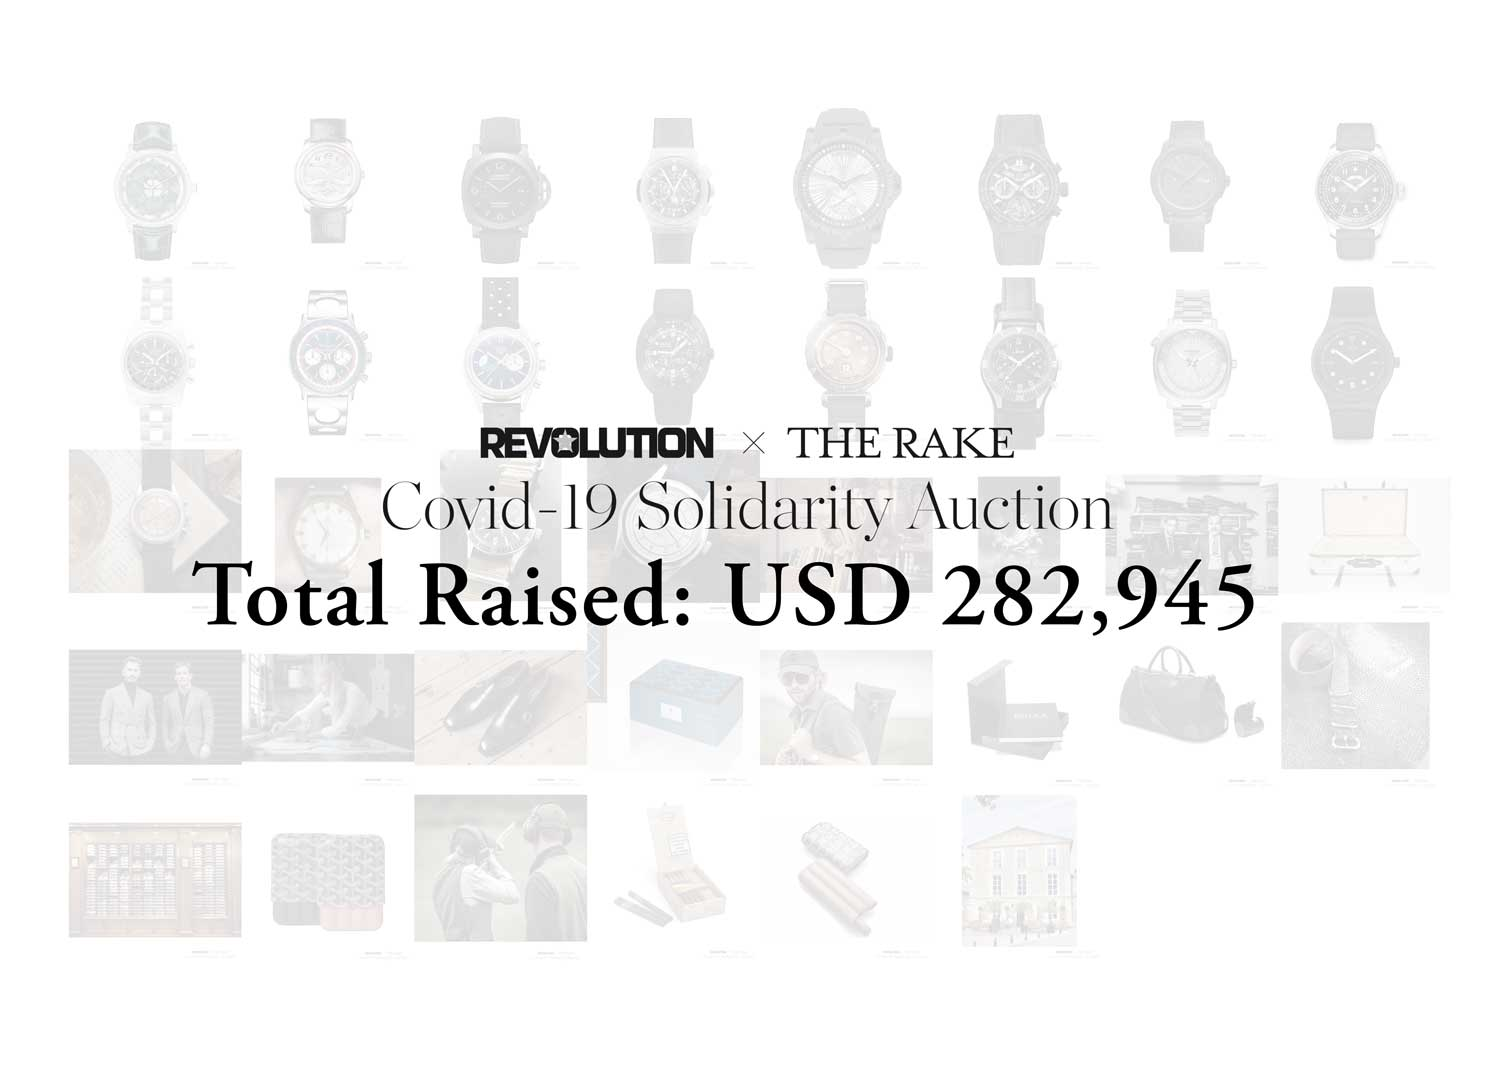 Revolution x The Rake Covid-19 Solidarity Auction, Total amount raised: USD 282,945